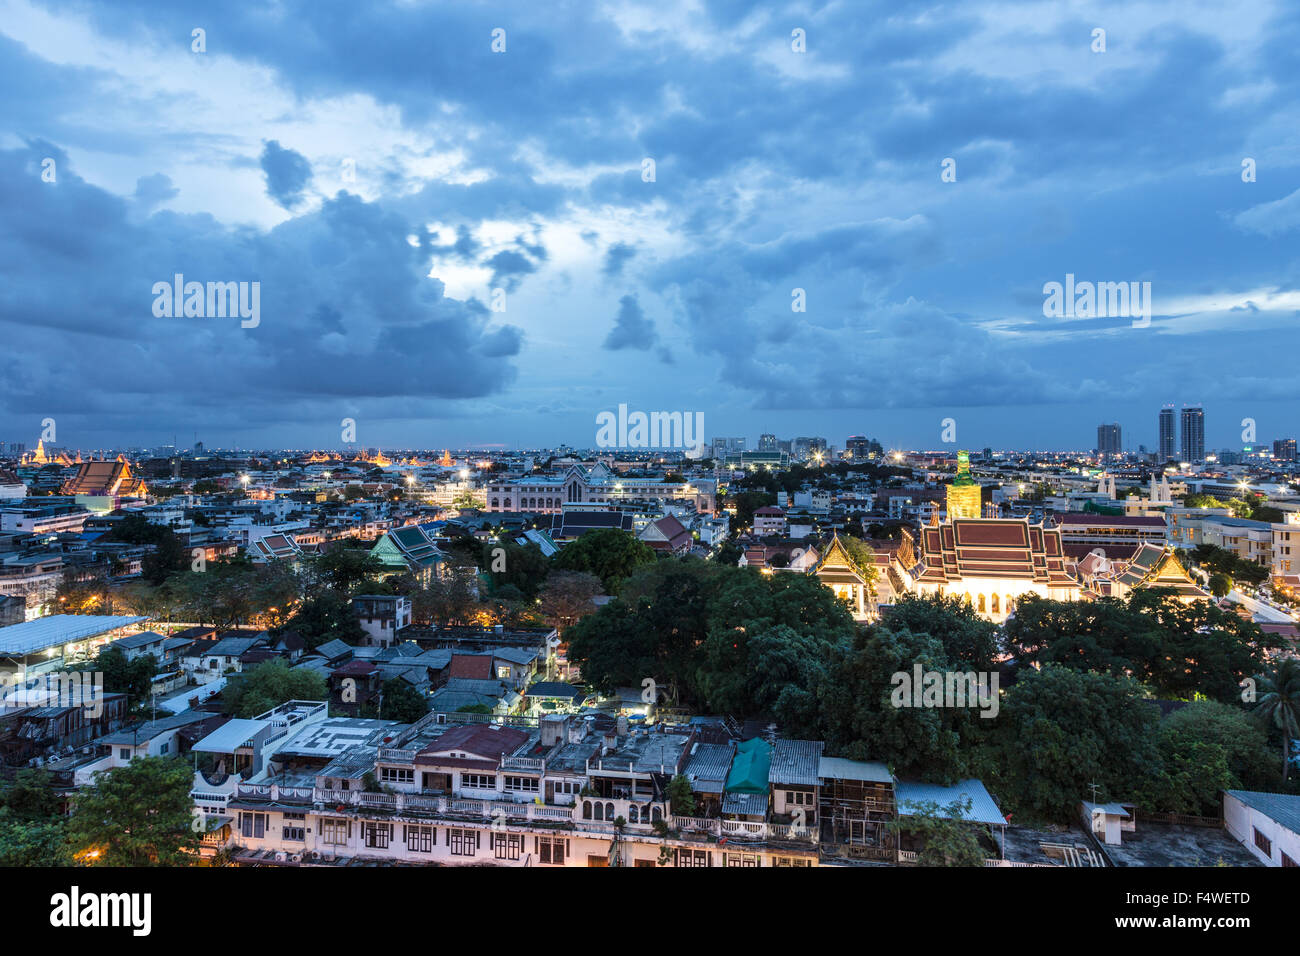 A view of Bangkok old city with lots of Buddhist temple (wat) at blue hour. Bangkok is thailand capital city - Stock Image